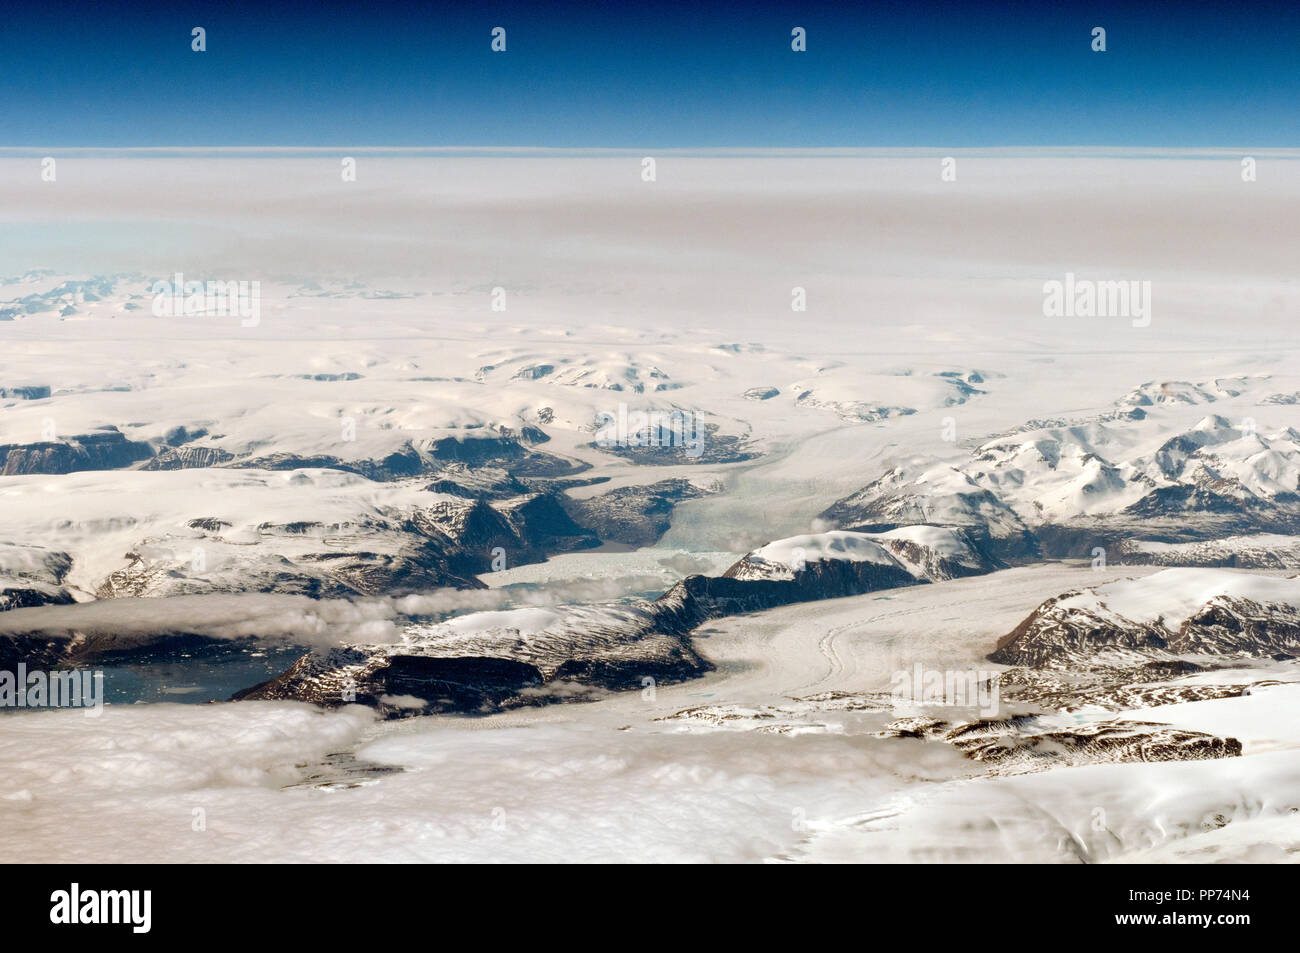 Aerial view of Greenland, glaciers, glacial melt, ice flows and blue pools - Stock Image